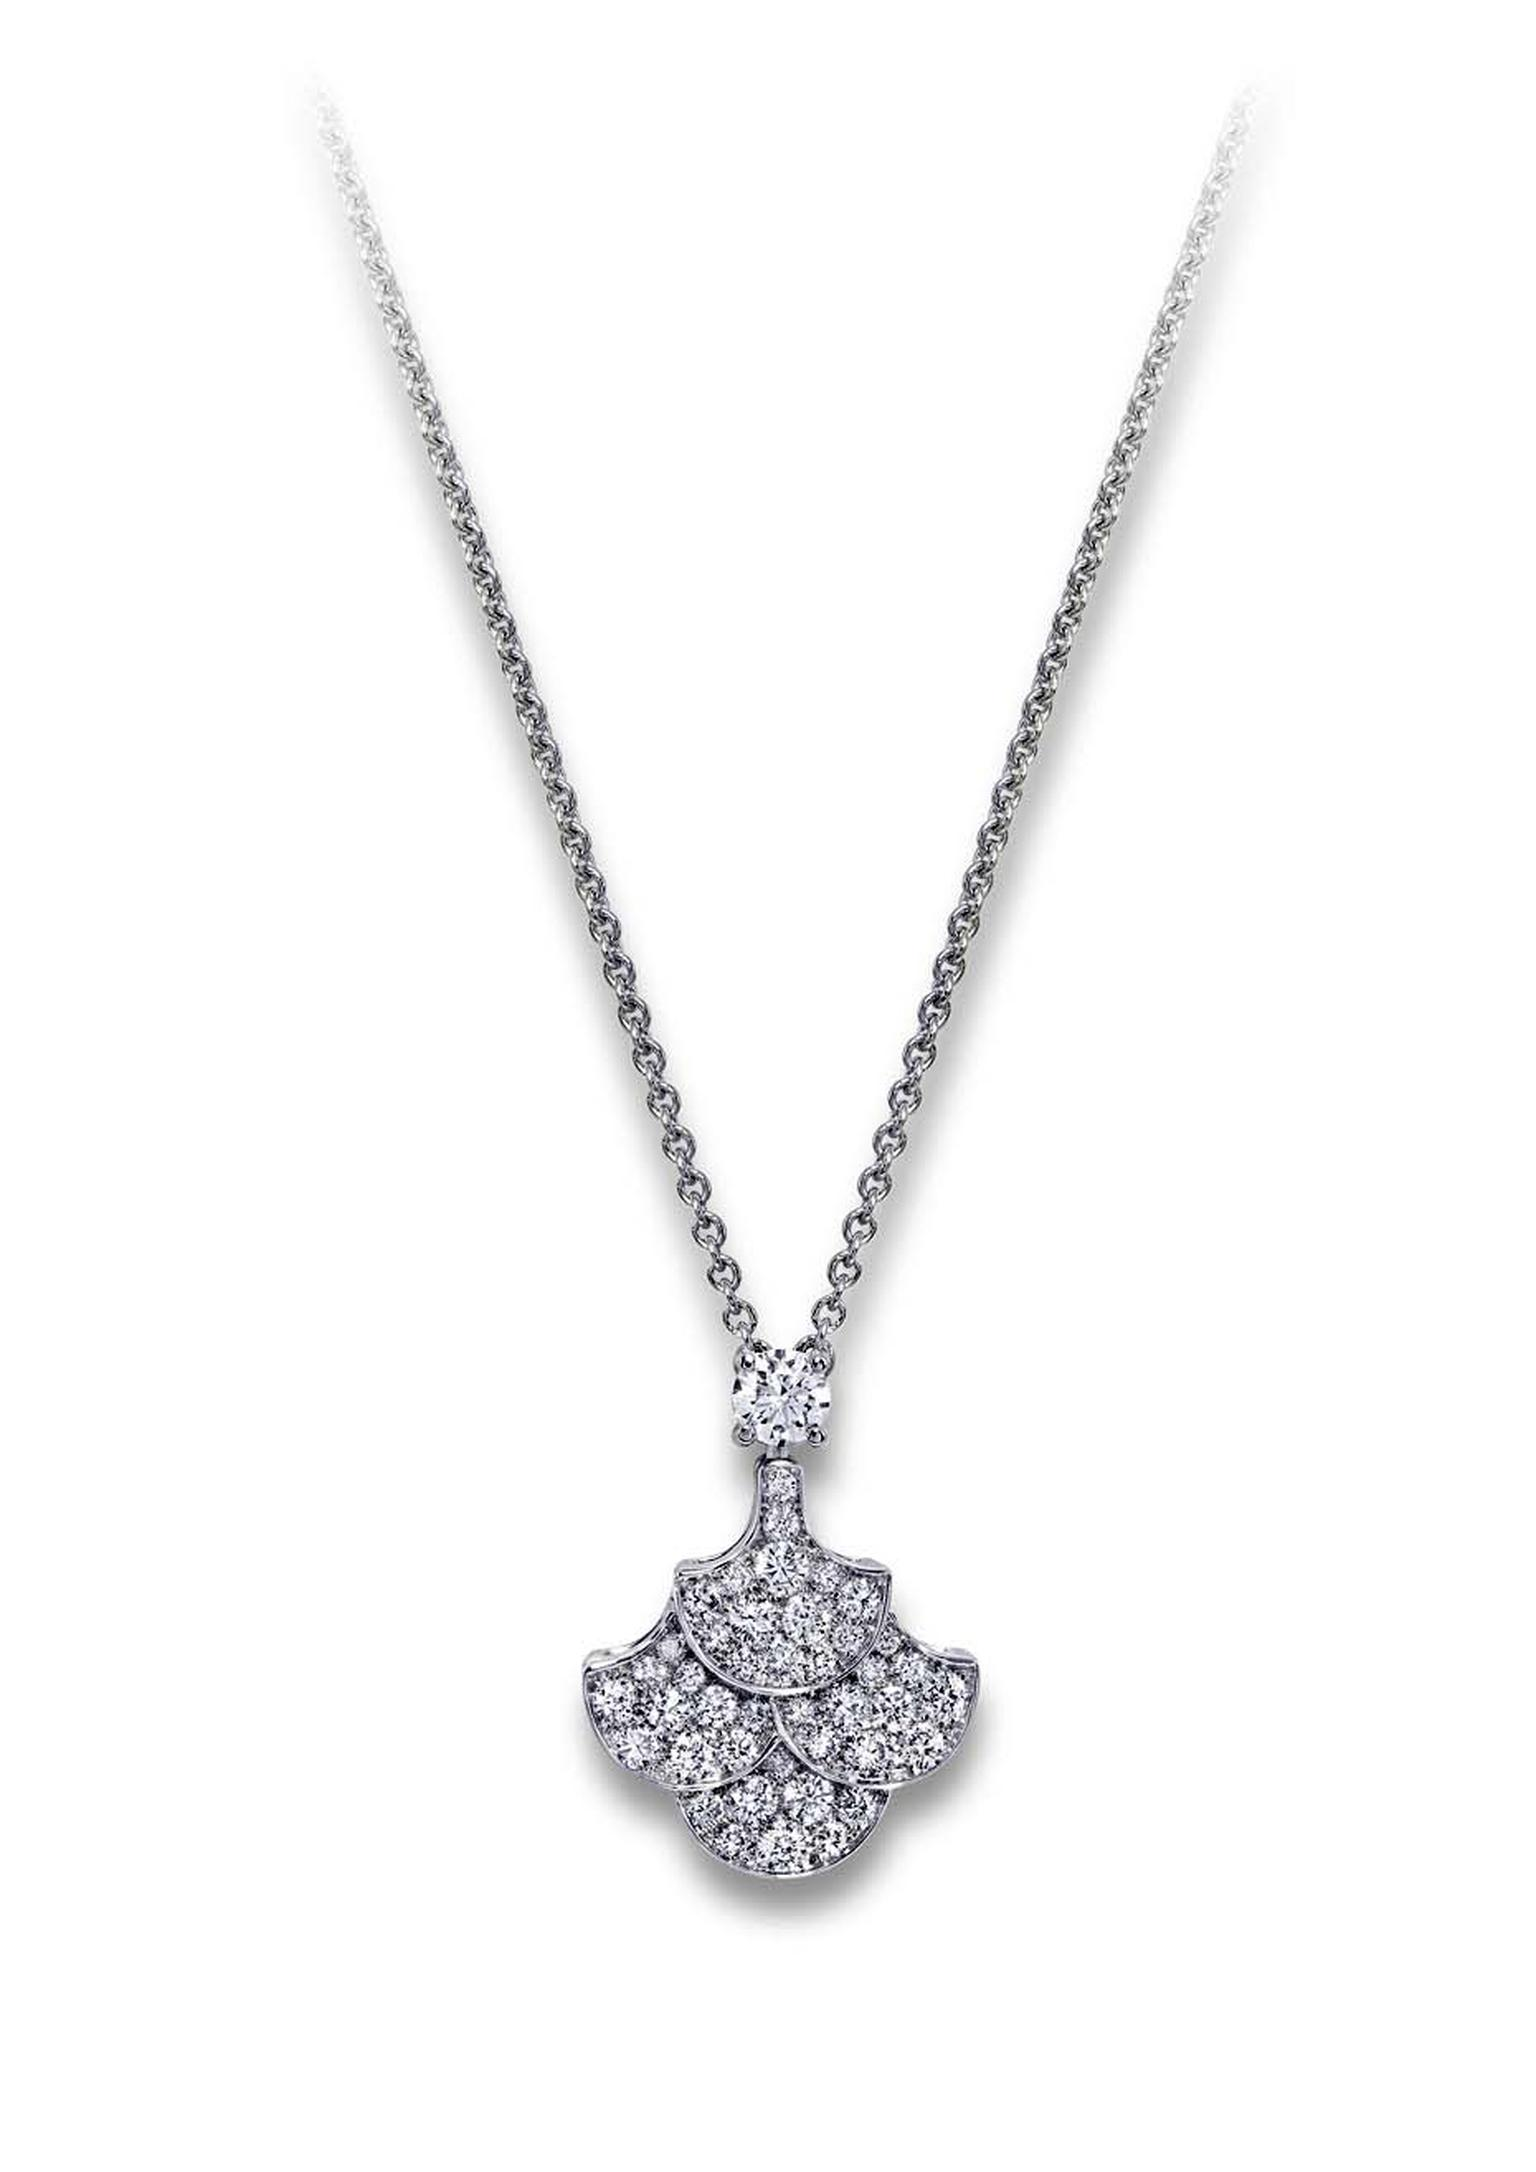 Graff Icon necklace in platinum with a pendant featuring four fan-shaped Graff Icons, covered in diamond pavé.